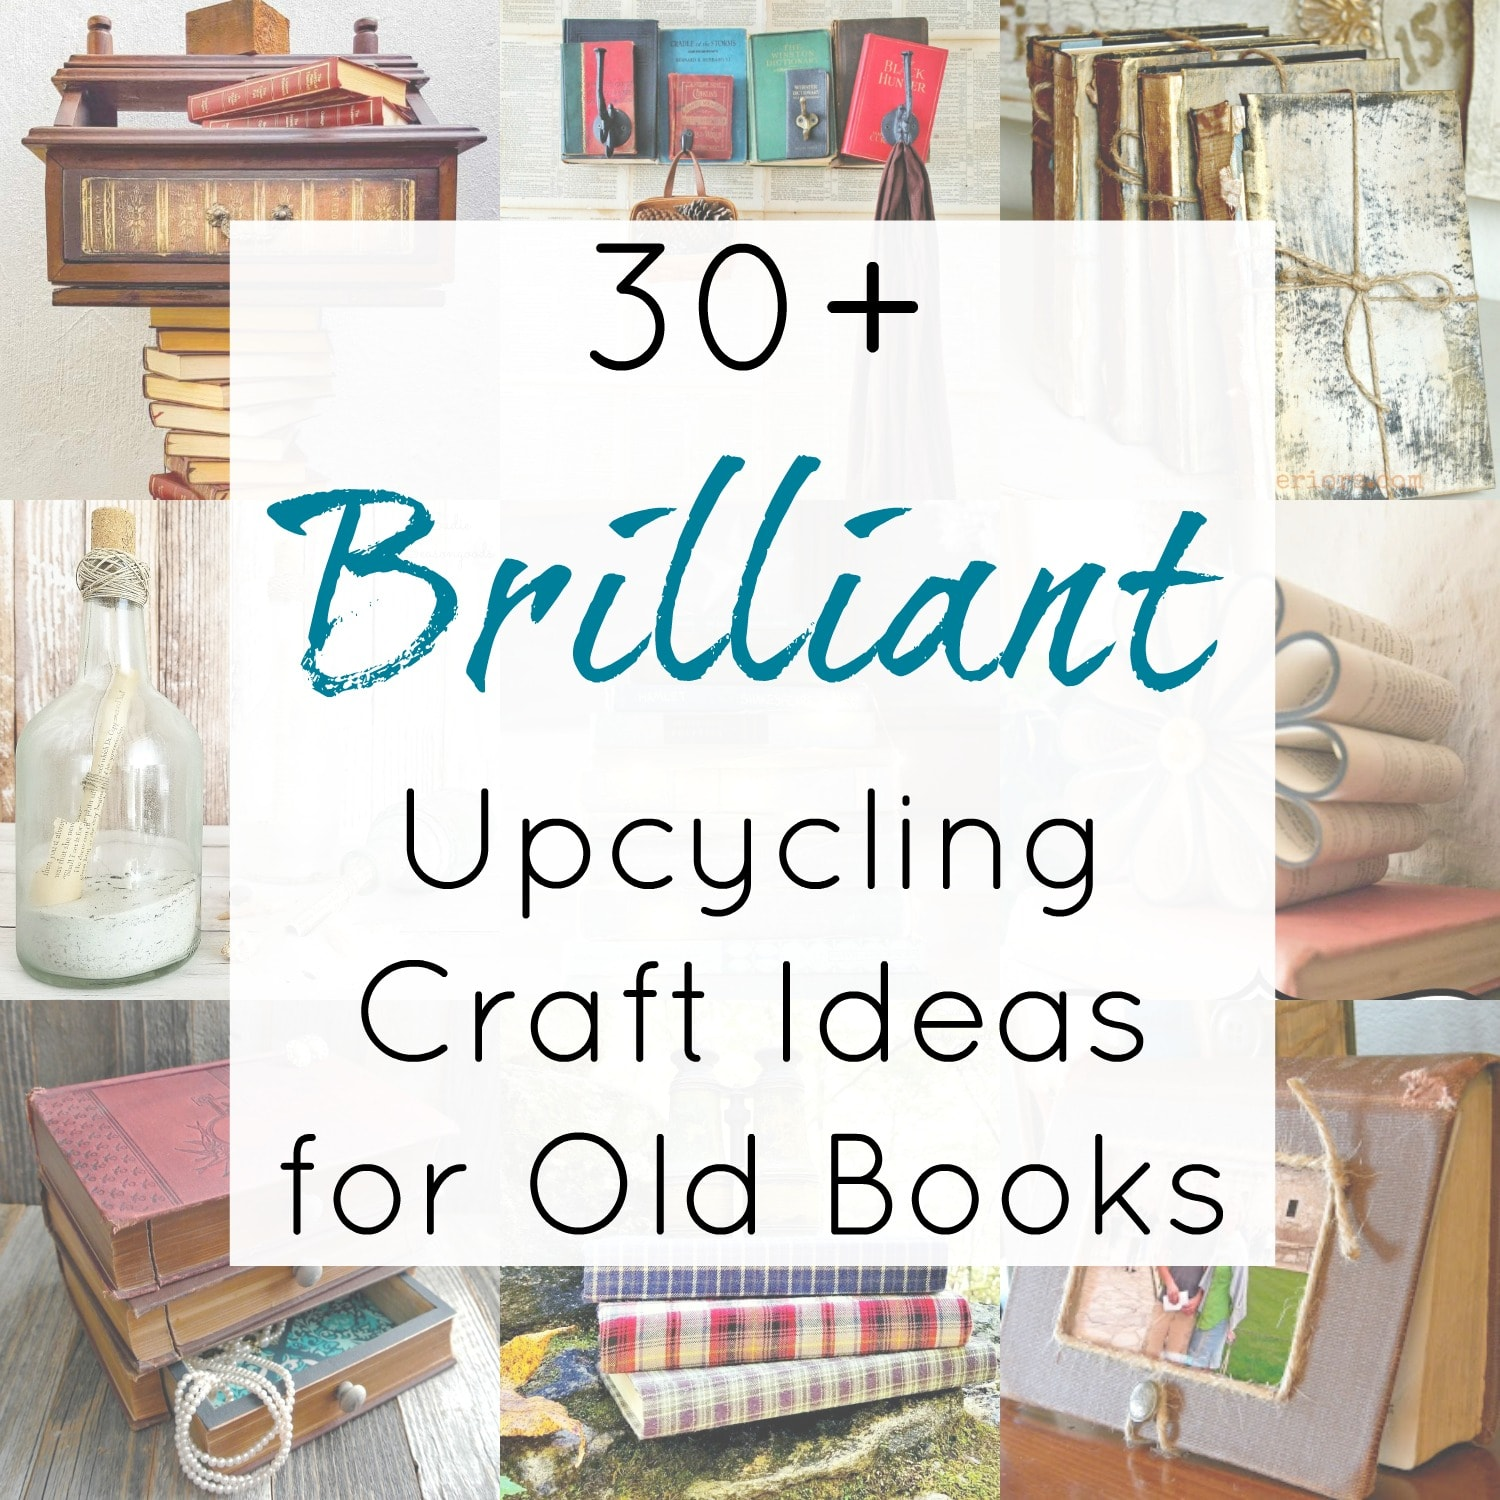 Amazing Upcycling Ideas for Old Books and Repurposed Book Projects for Vintage Books compiled by Sadie Seasongoods